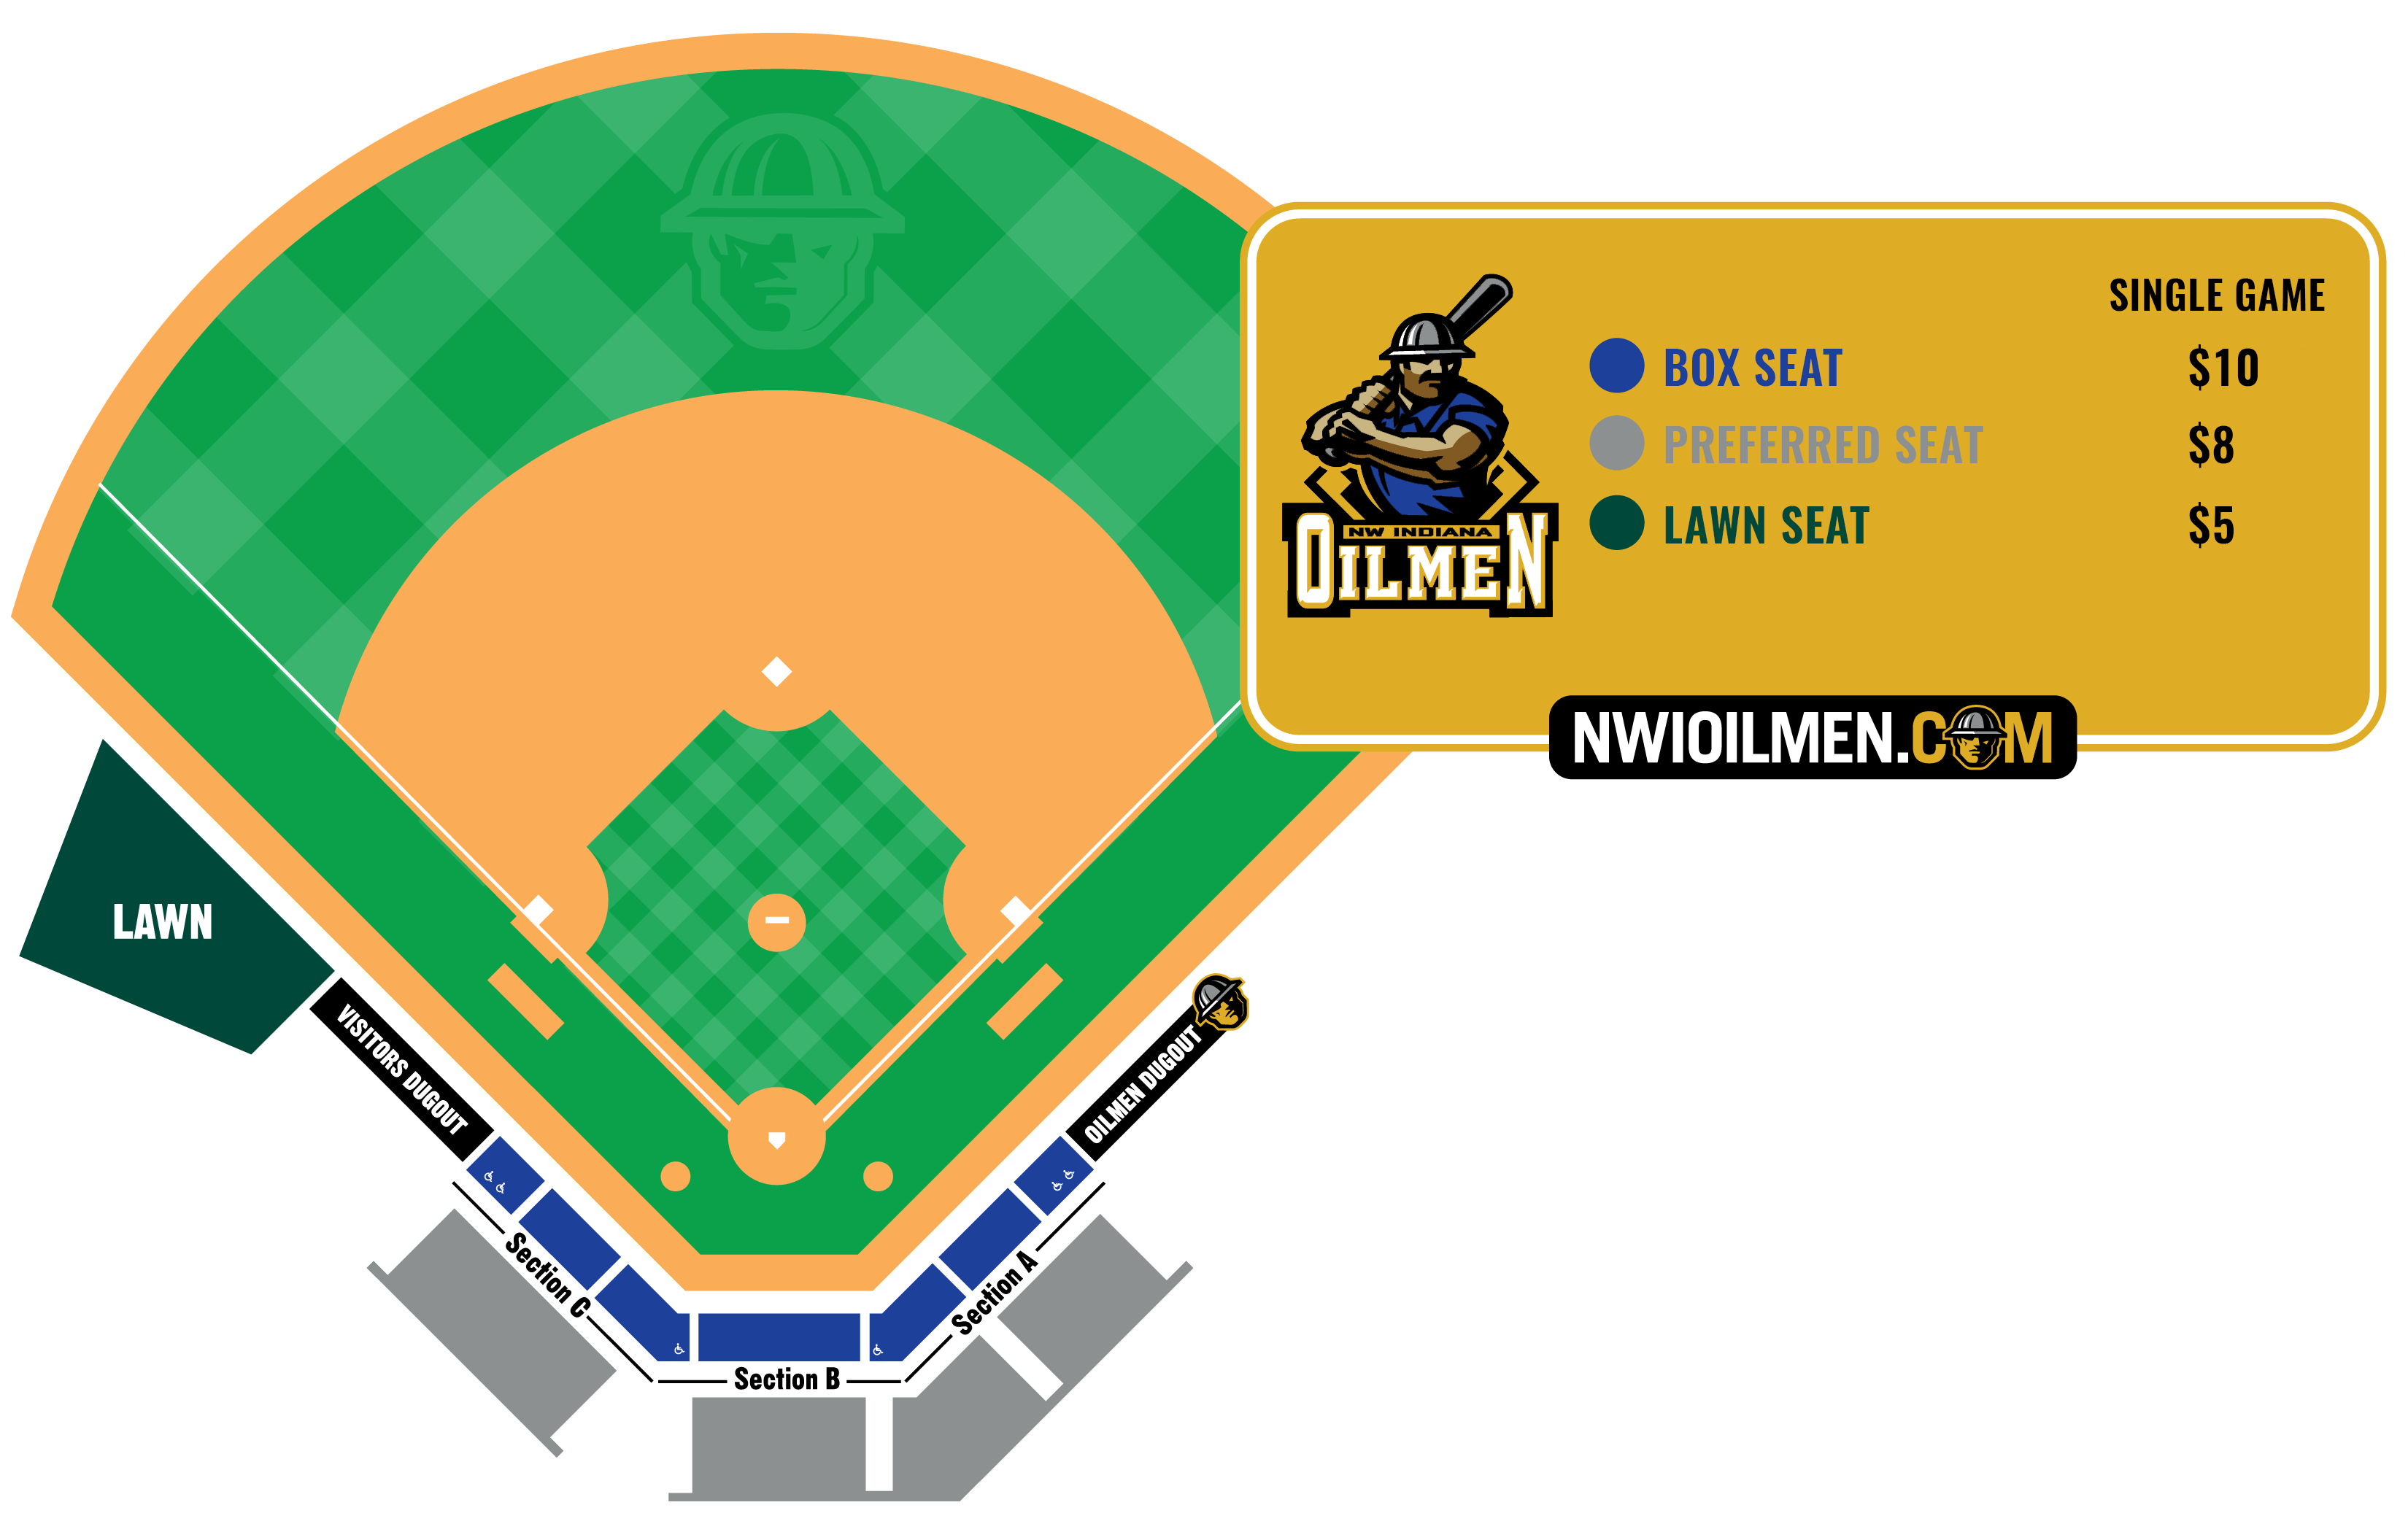 The Official Website Of The Nwi Oilmen Seating Chart